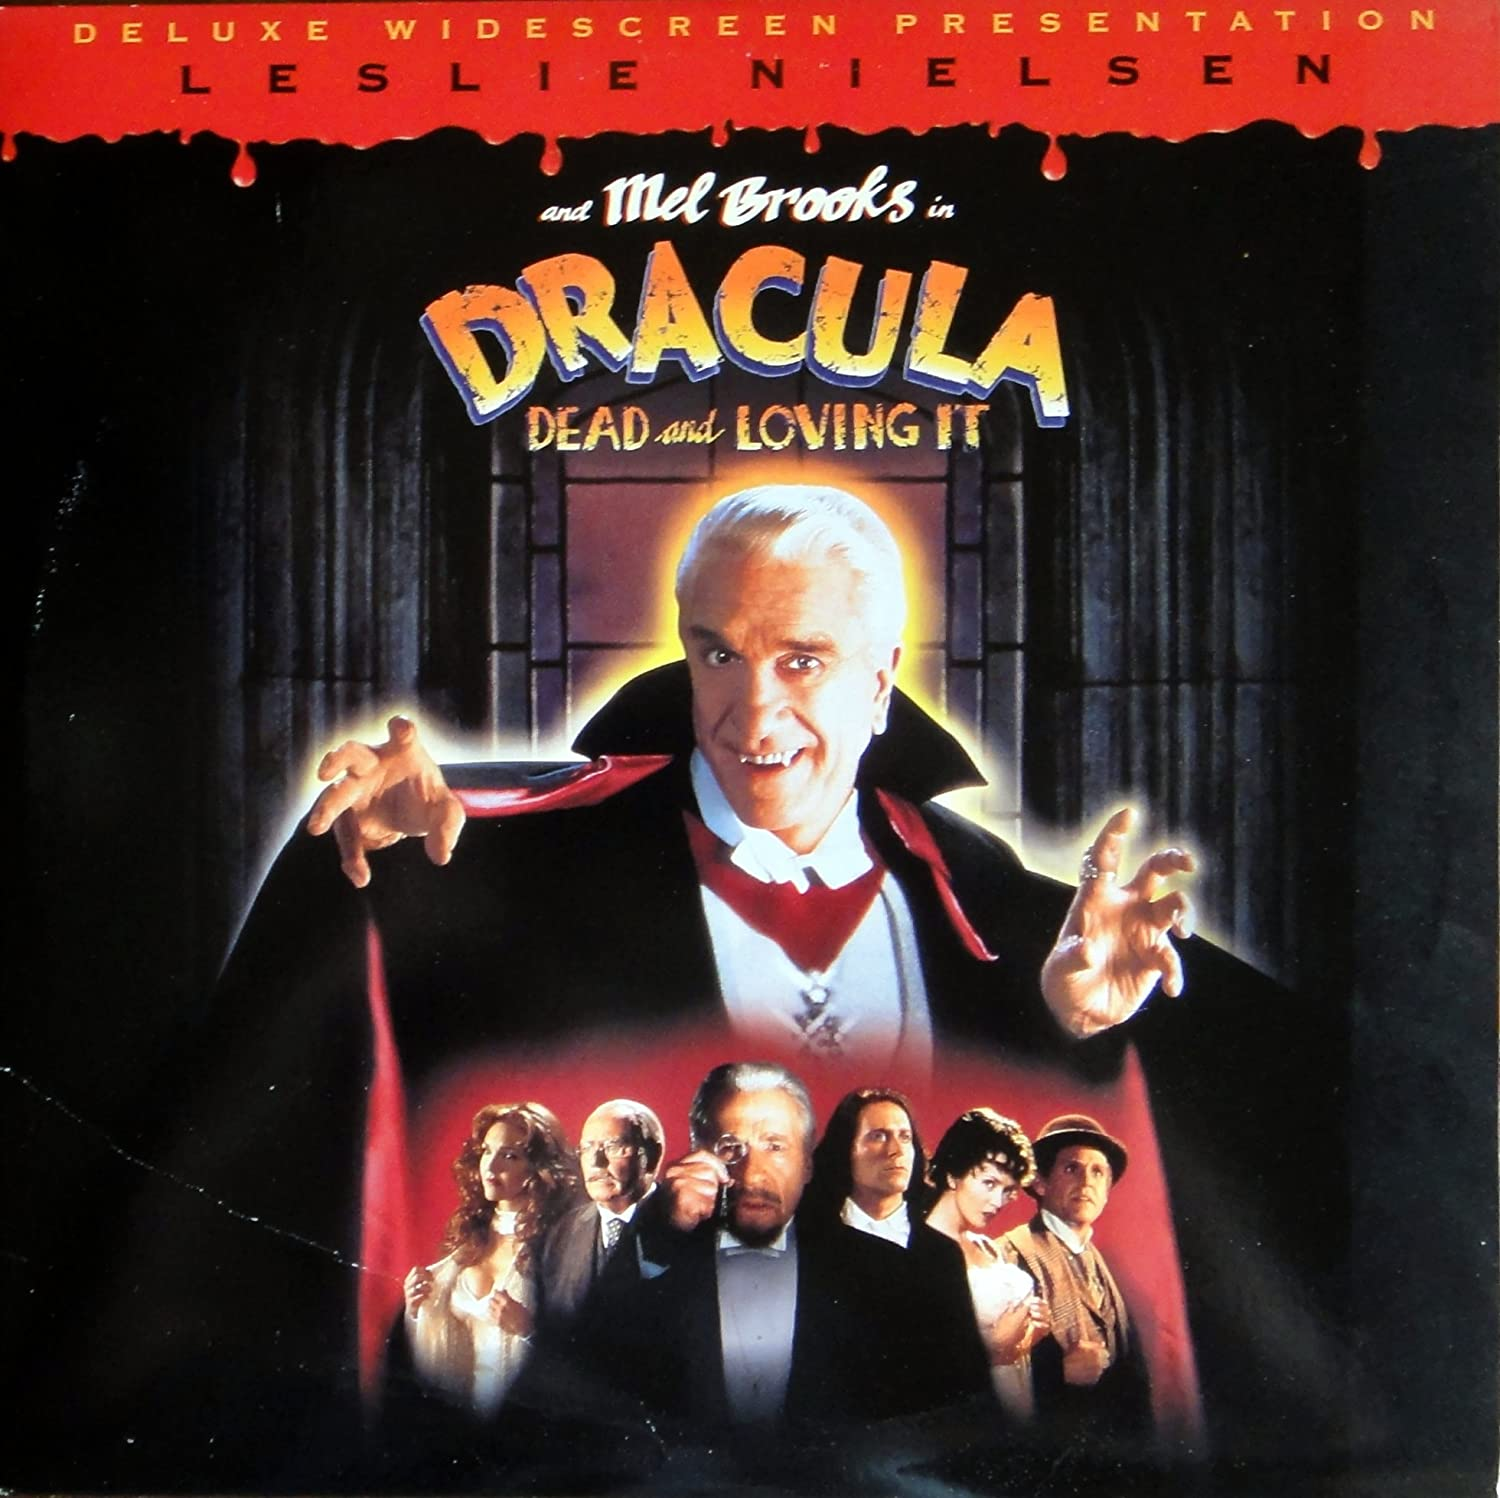 Amazon.com: DRACULA DEAD AND LOVING IT Deluxe Widescreen Presentation  Laserdisc (LD NOT DVD) Leslie Nielsen Mel Brooks: Movies & TV